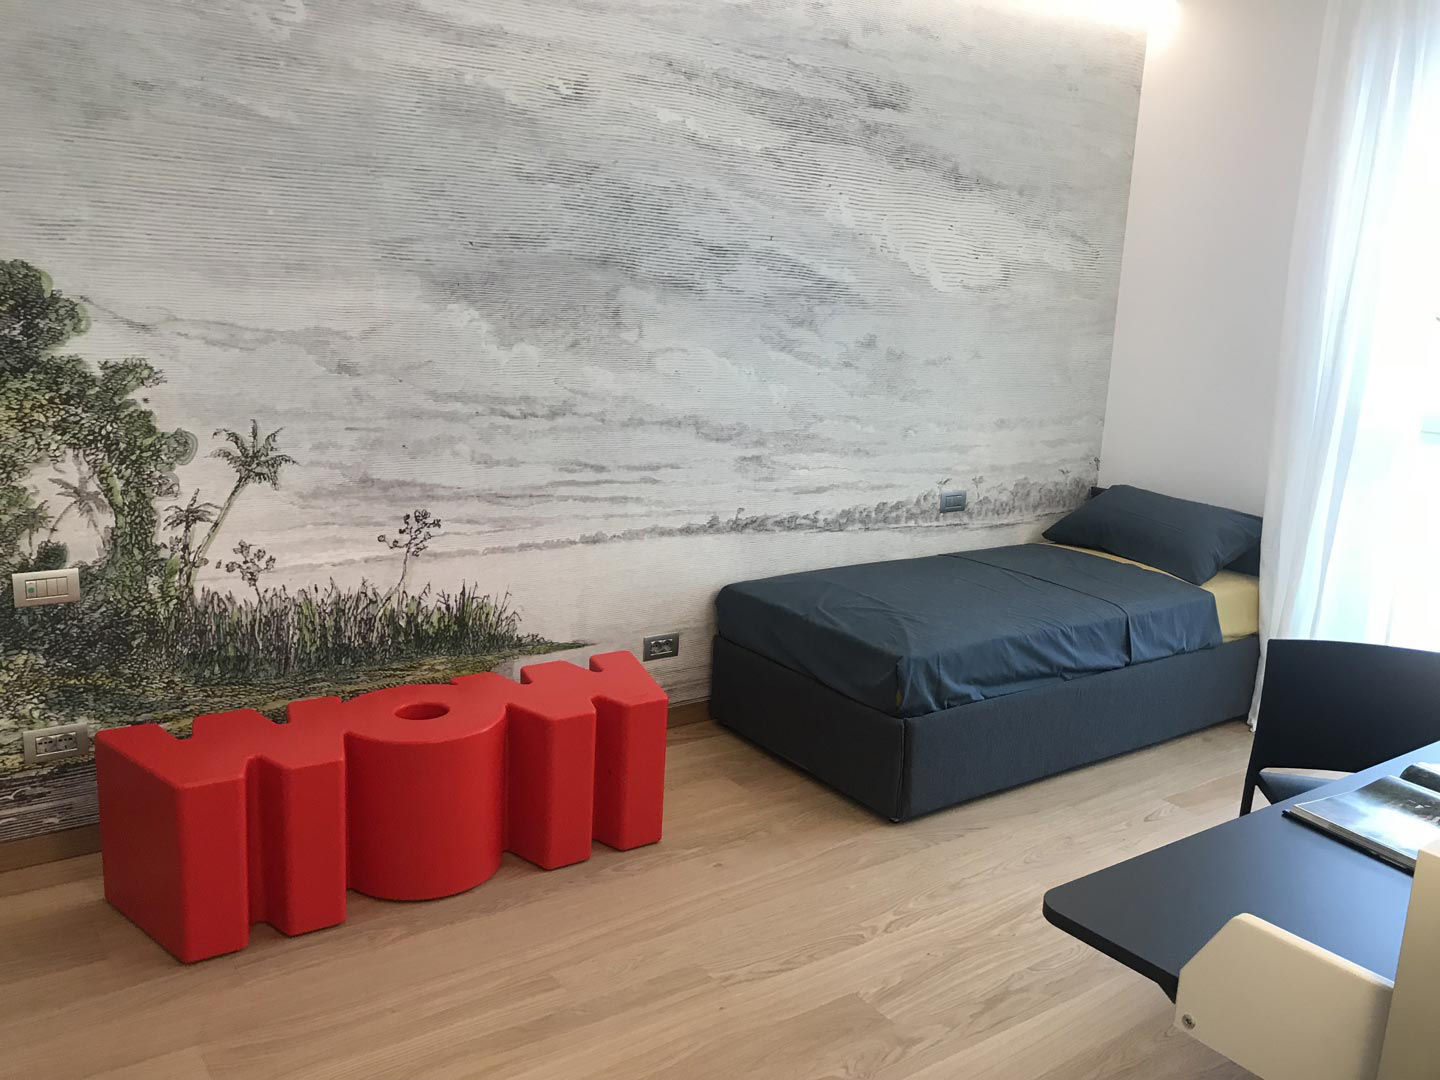 Panchina wow di slide rosso made in design for Arredamento made in china